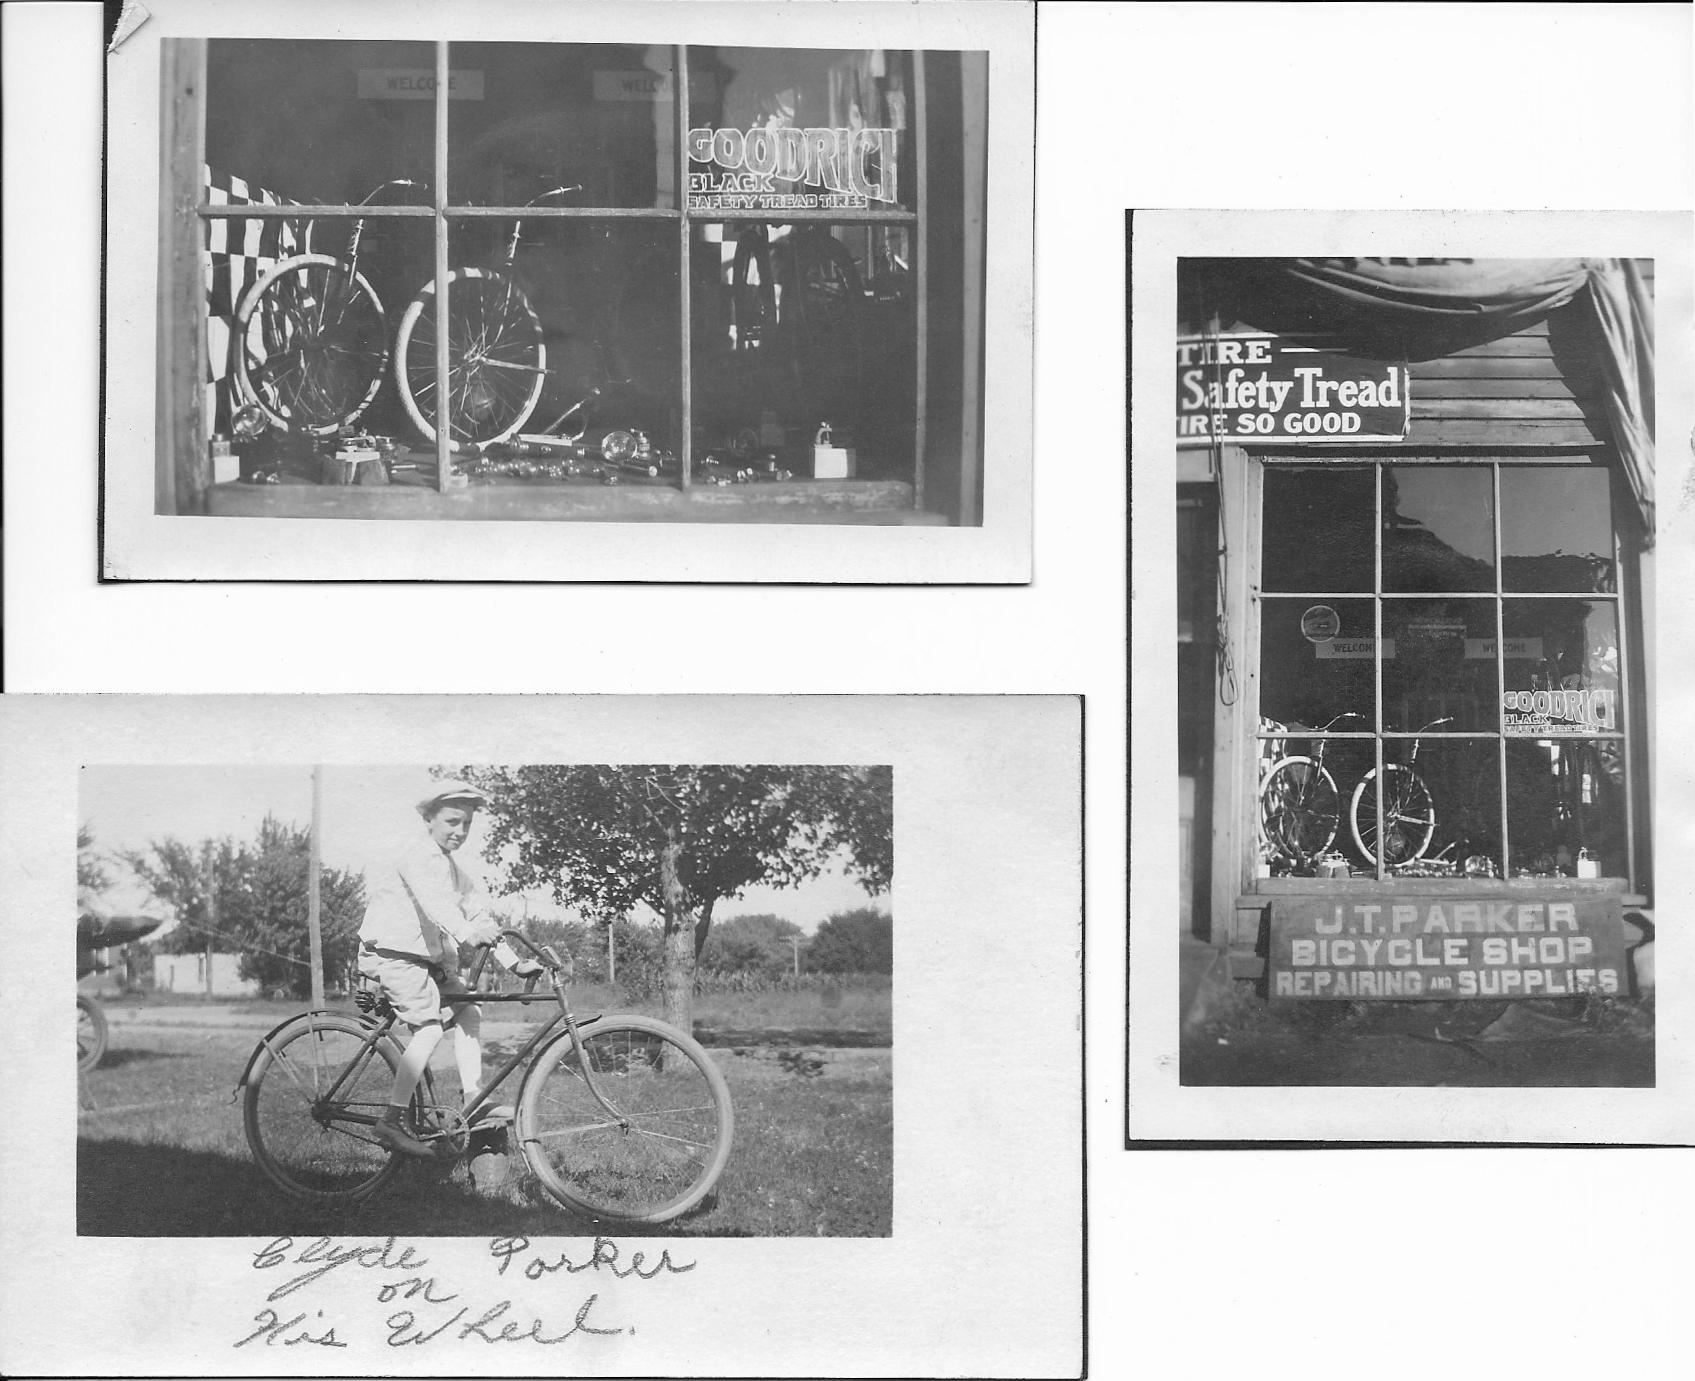 J. T. Parker Cycle Shop all three photos0003.jpg